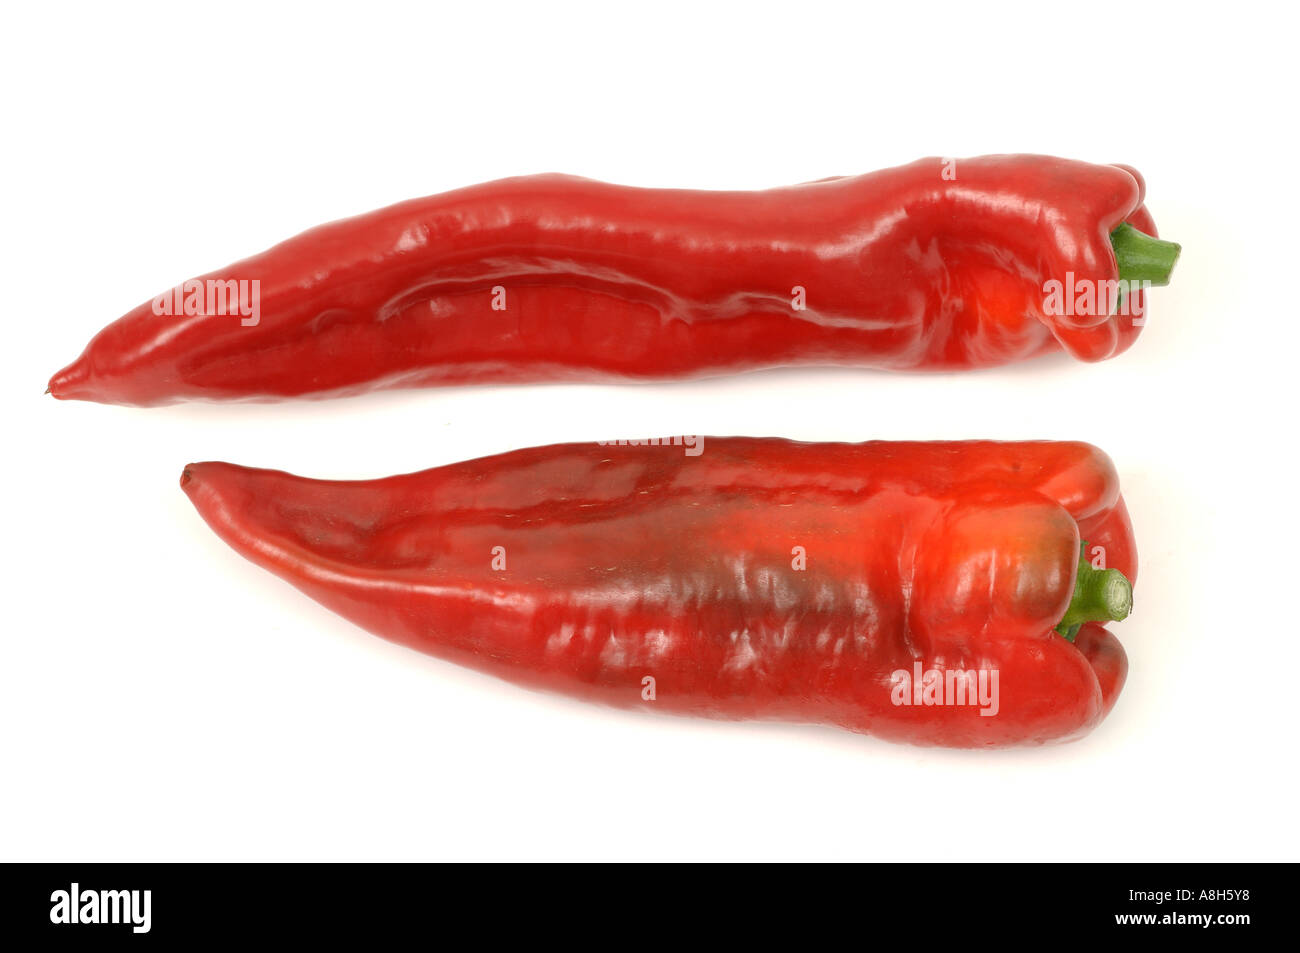 Vegetable produce typical supermarket bought sweet capsicum peppers Stock Photo